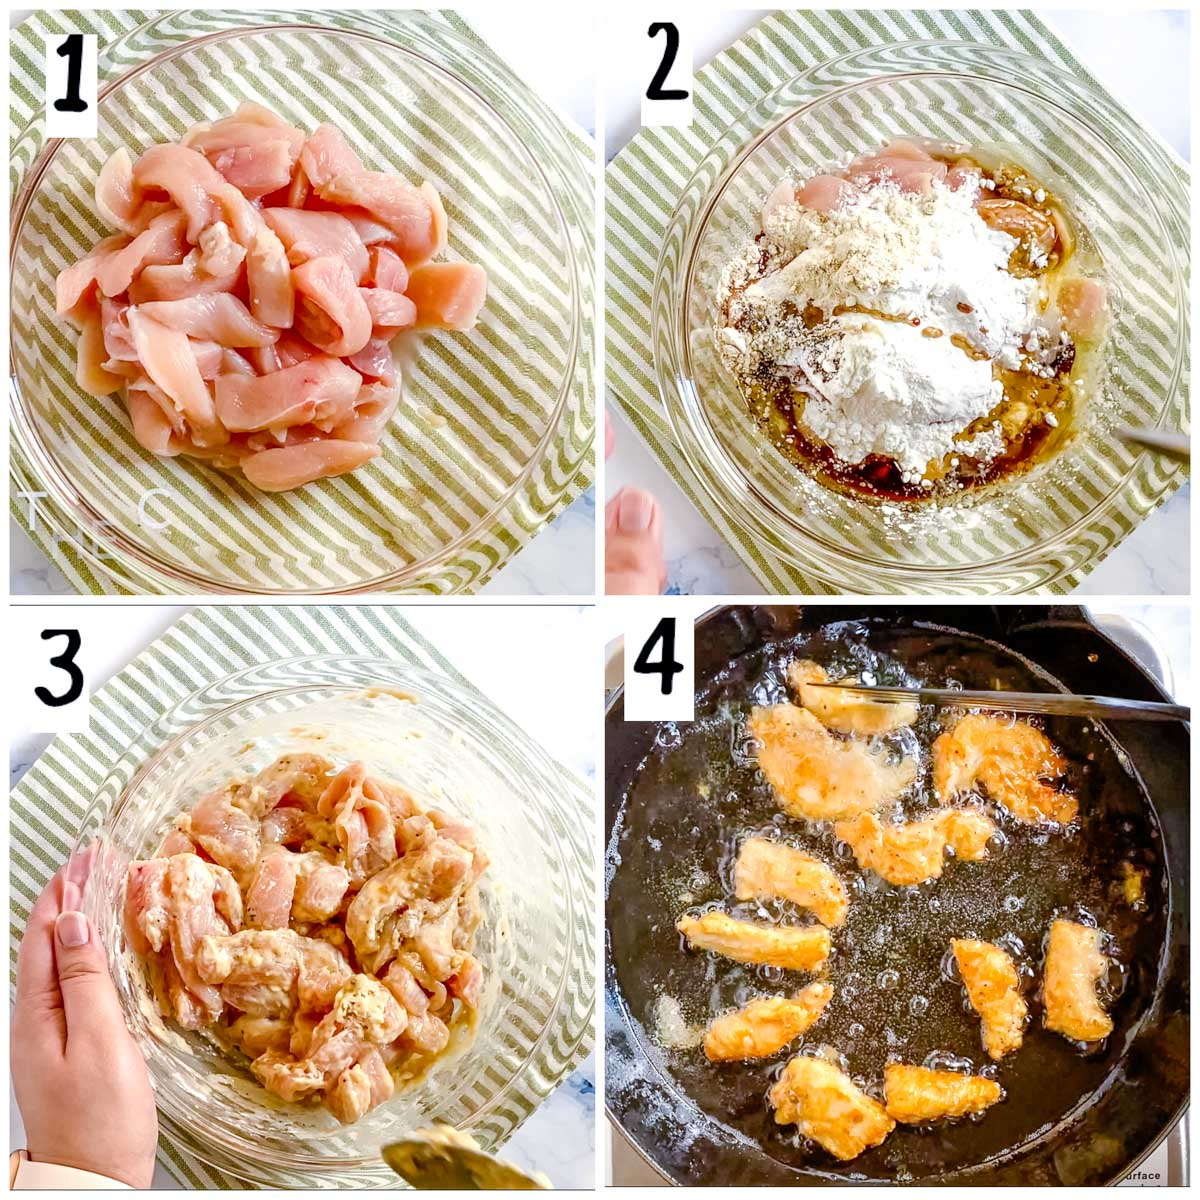 step by step photos of marinating and frying the chicken.